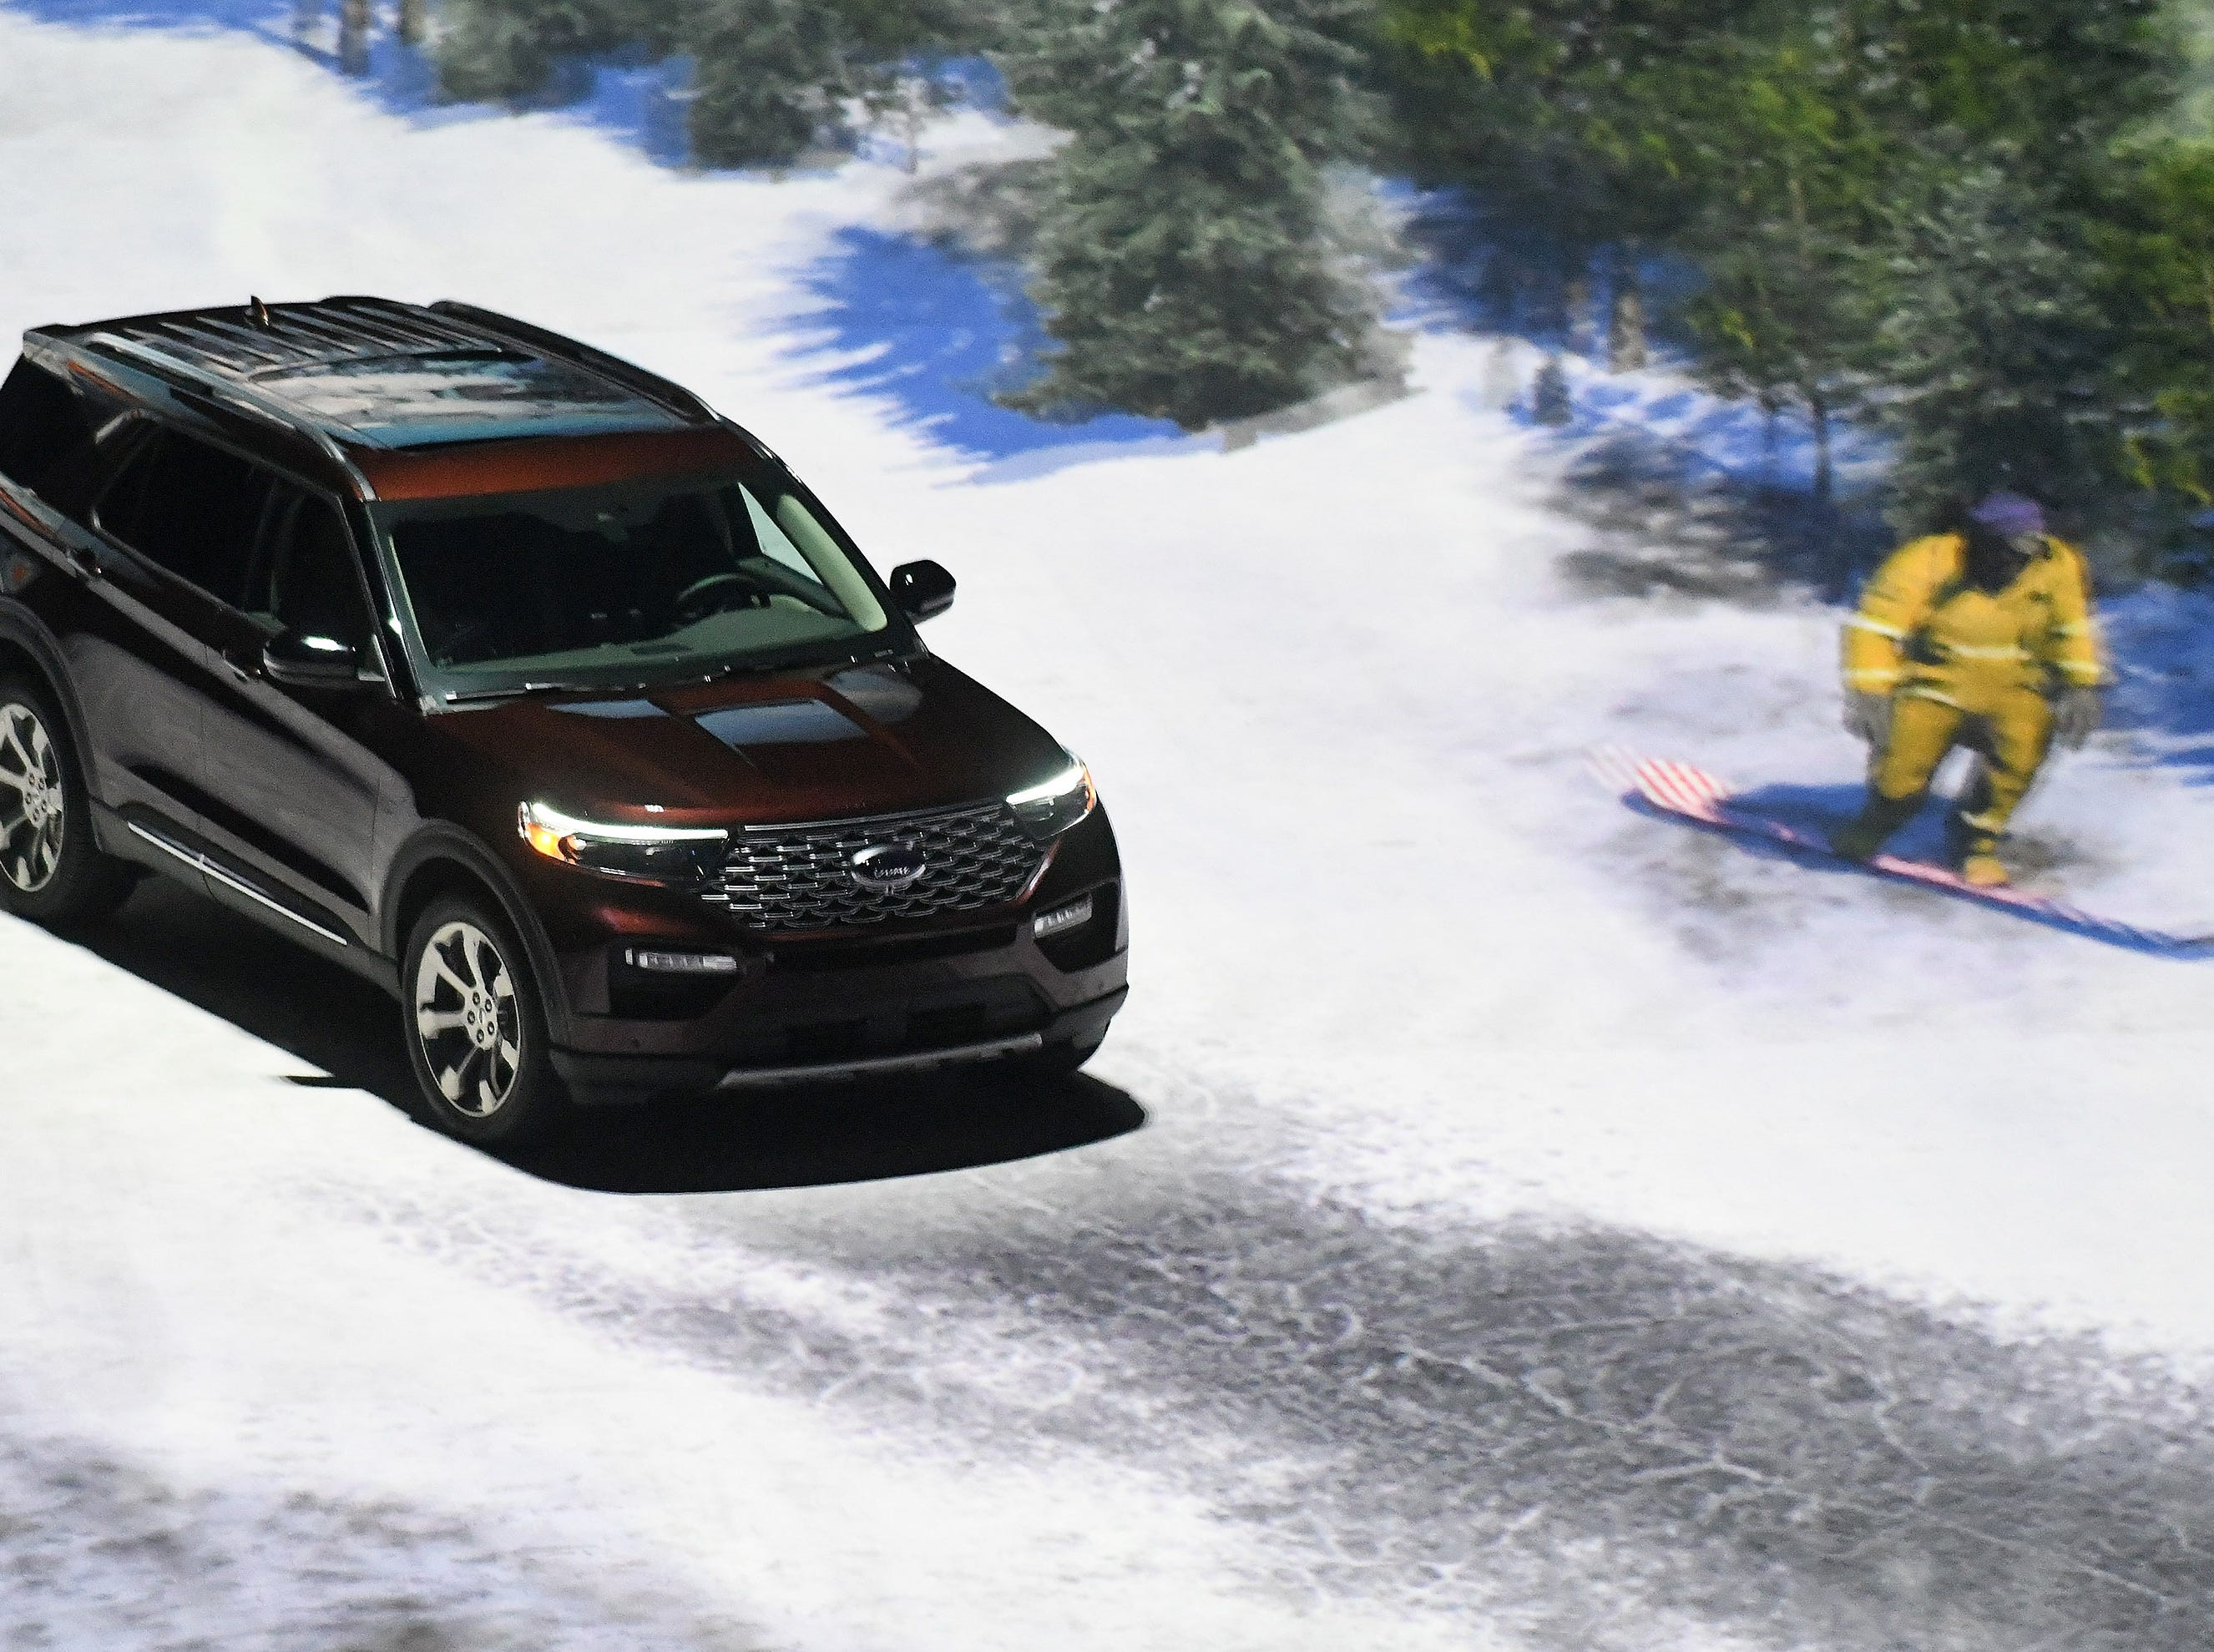 A 2020 Ford Explorer appears to be driving through a snowy wooded area due to video effects.